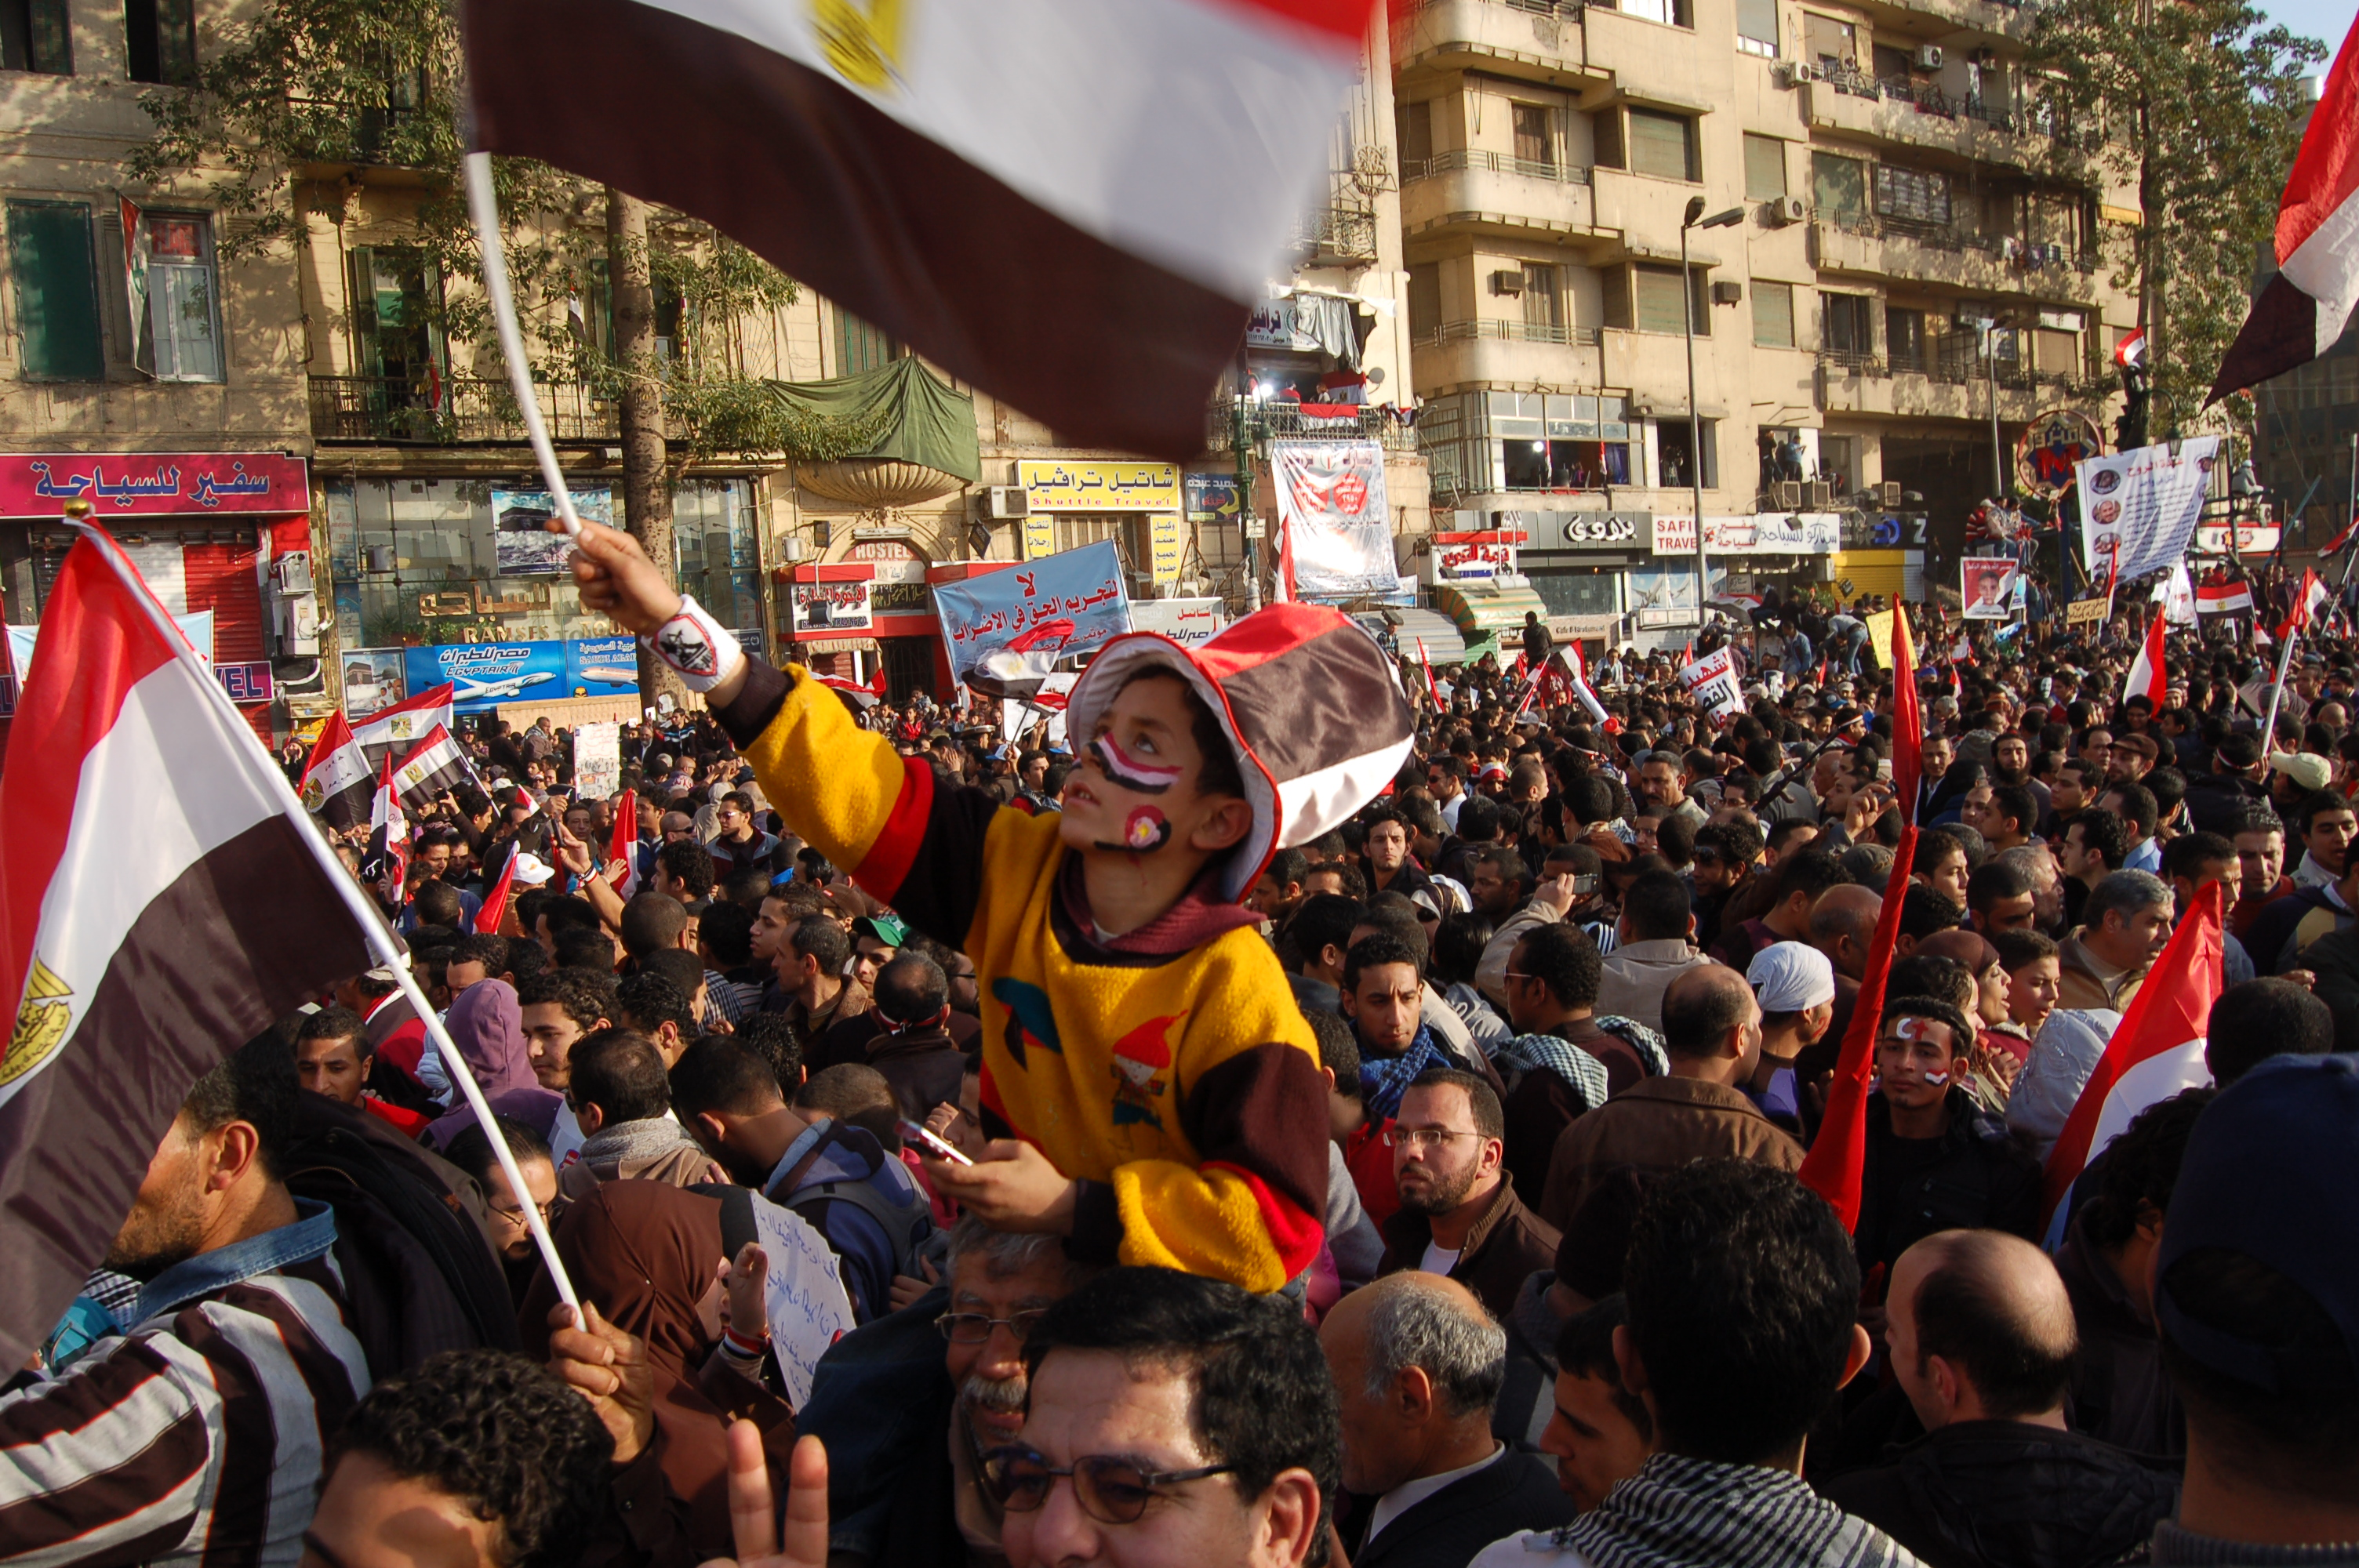 Another 18 days in Tahrir, a first hand account of the Egyptian revolution one year on